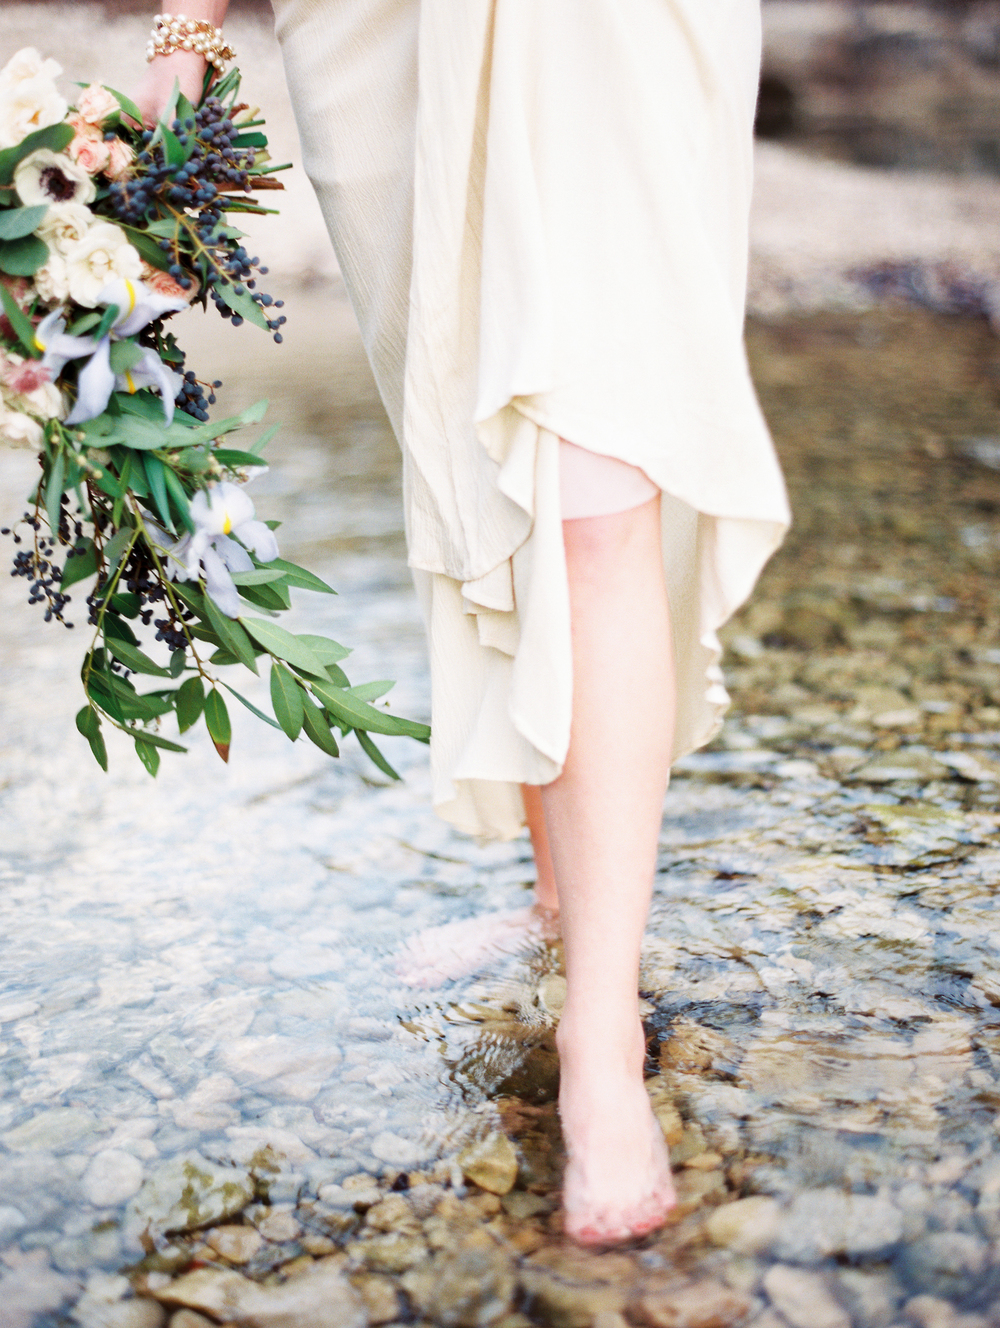 Alyssa-Nikole-Photography-Serenity-Styled-Shoot-20.jpg